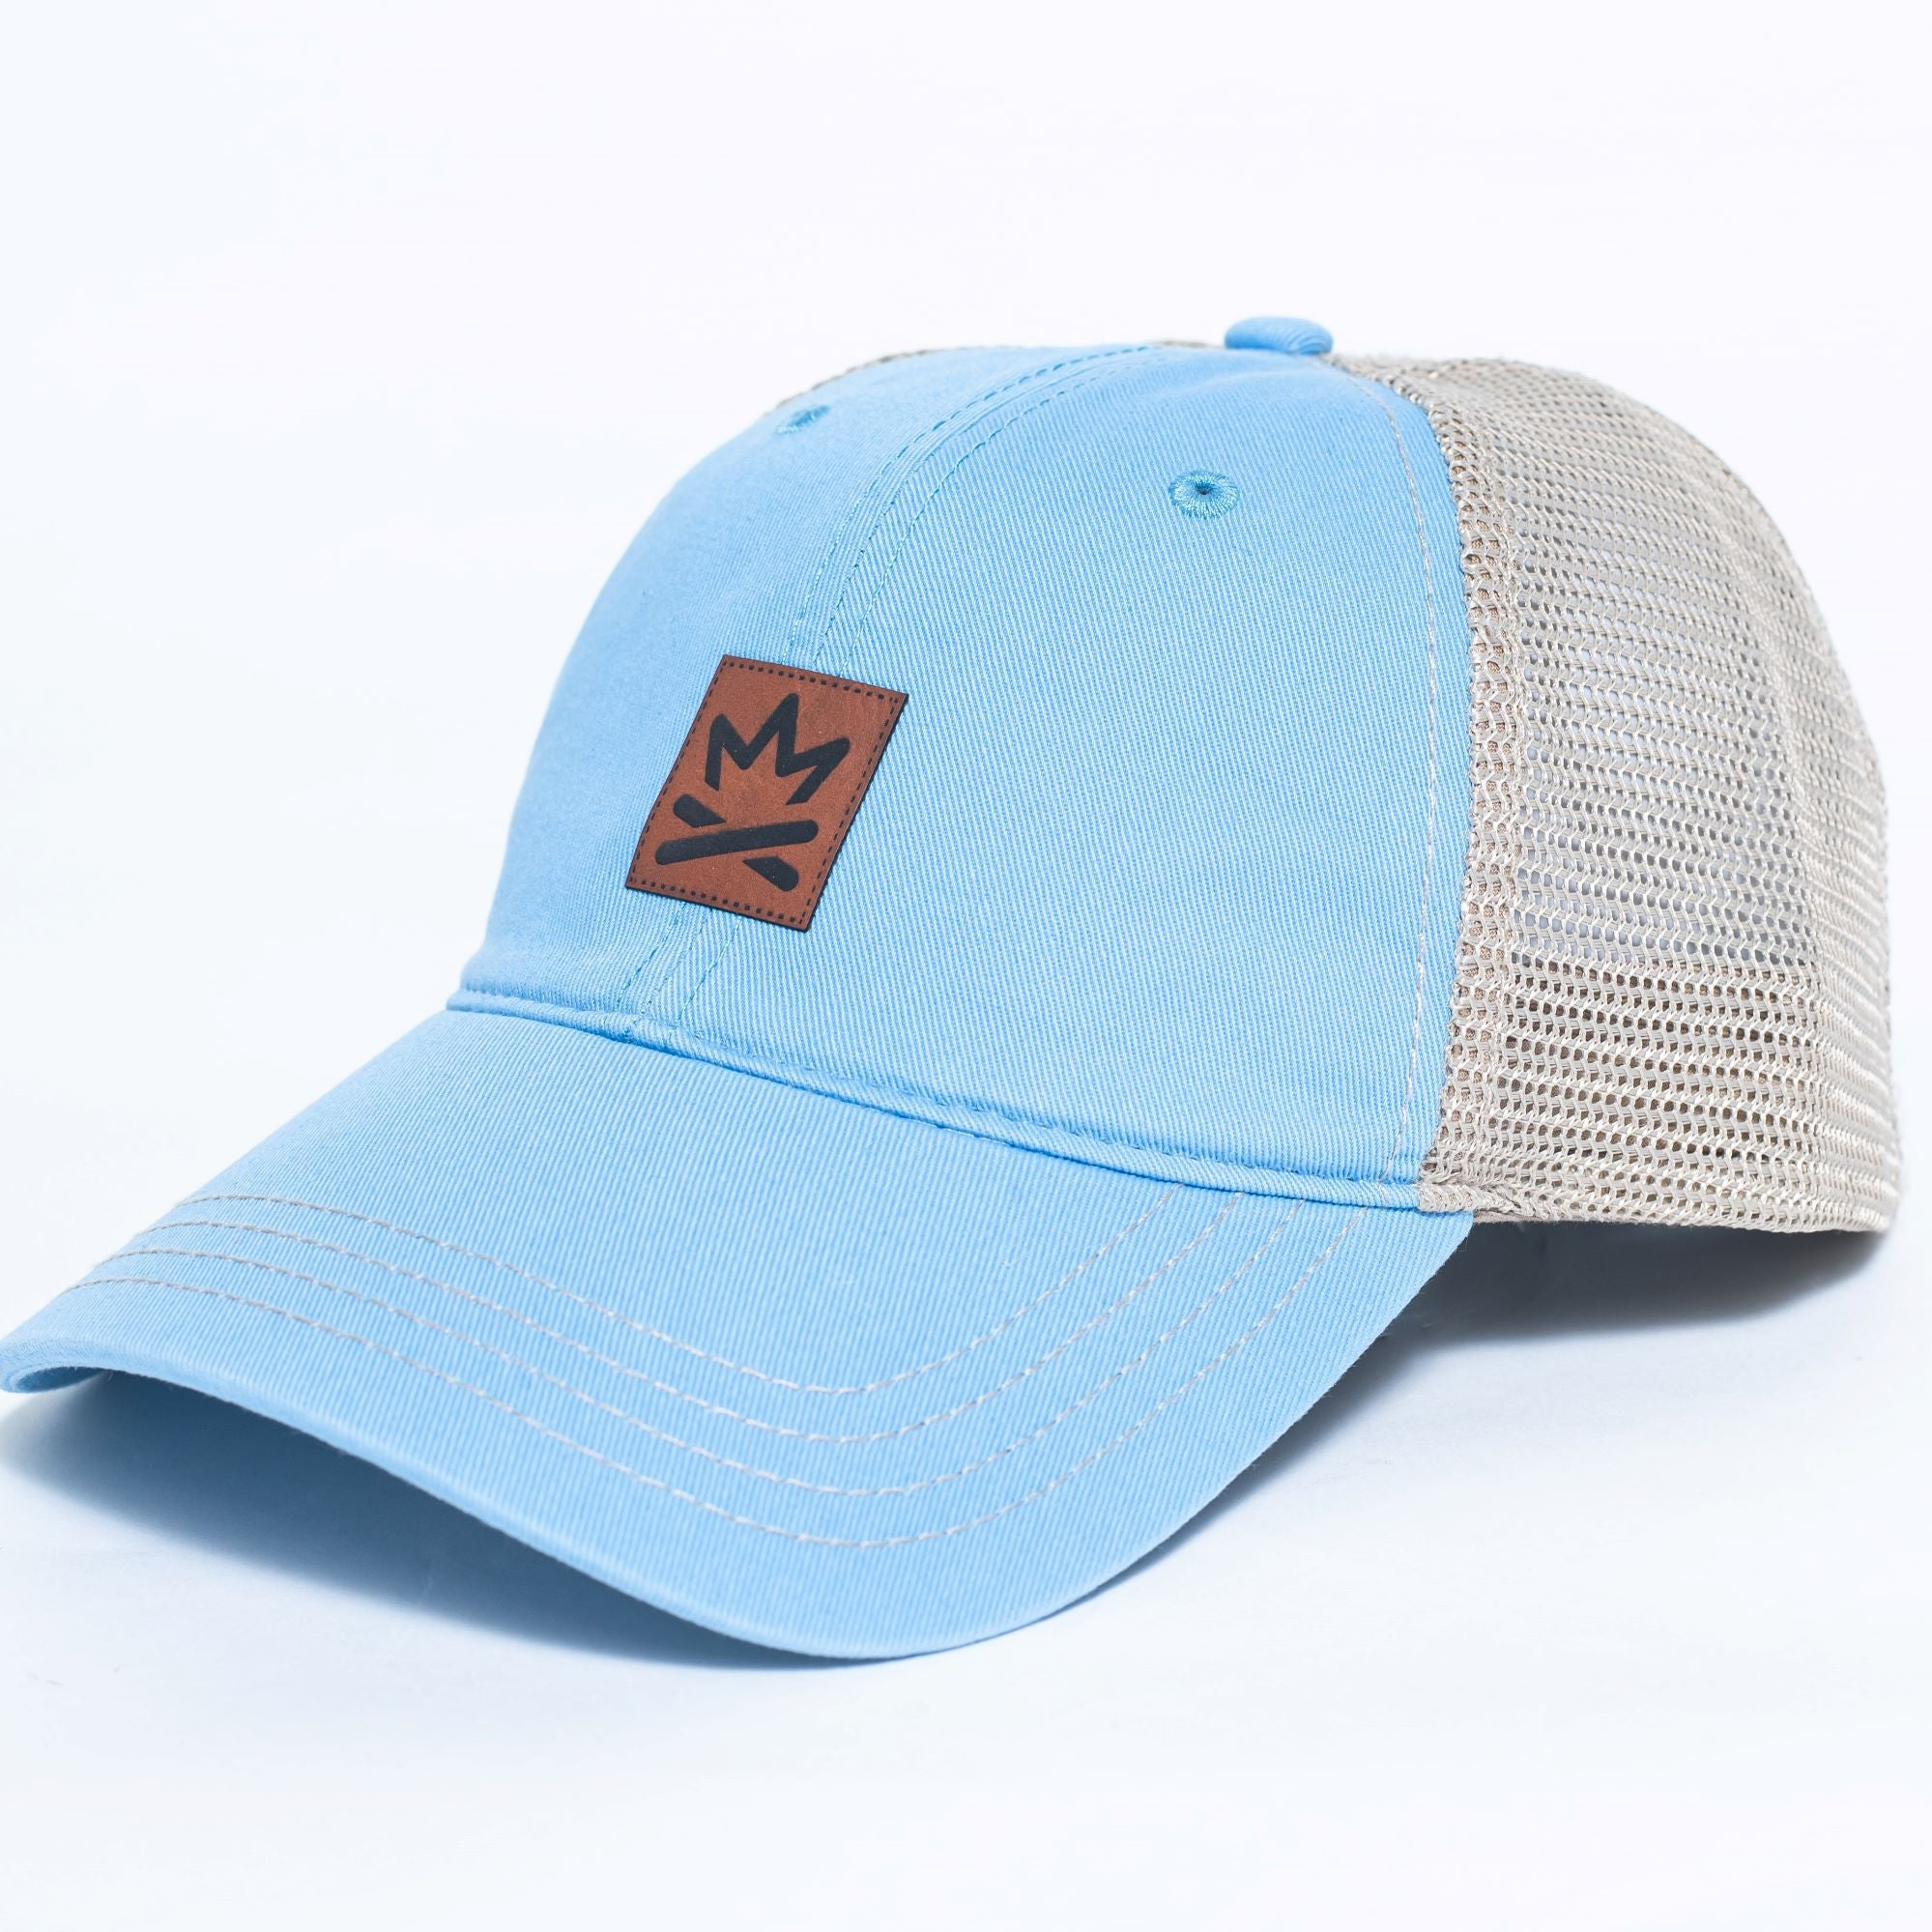 Fire Lake Patch Hat - Cabin Guy on back